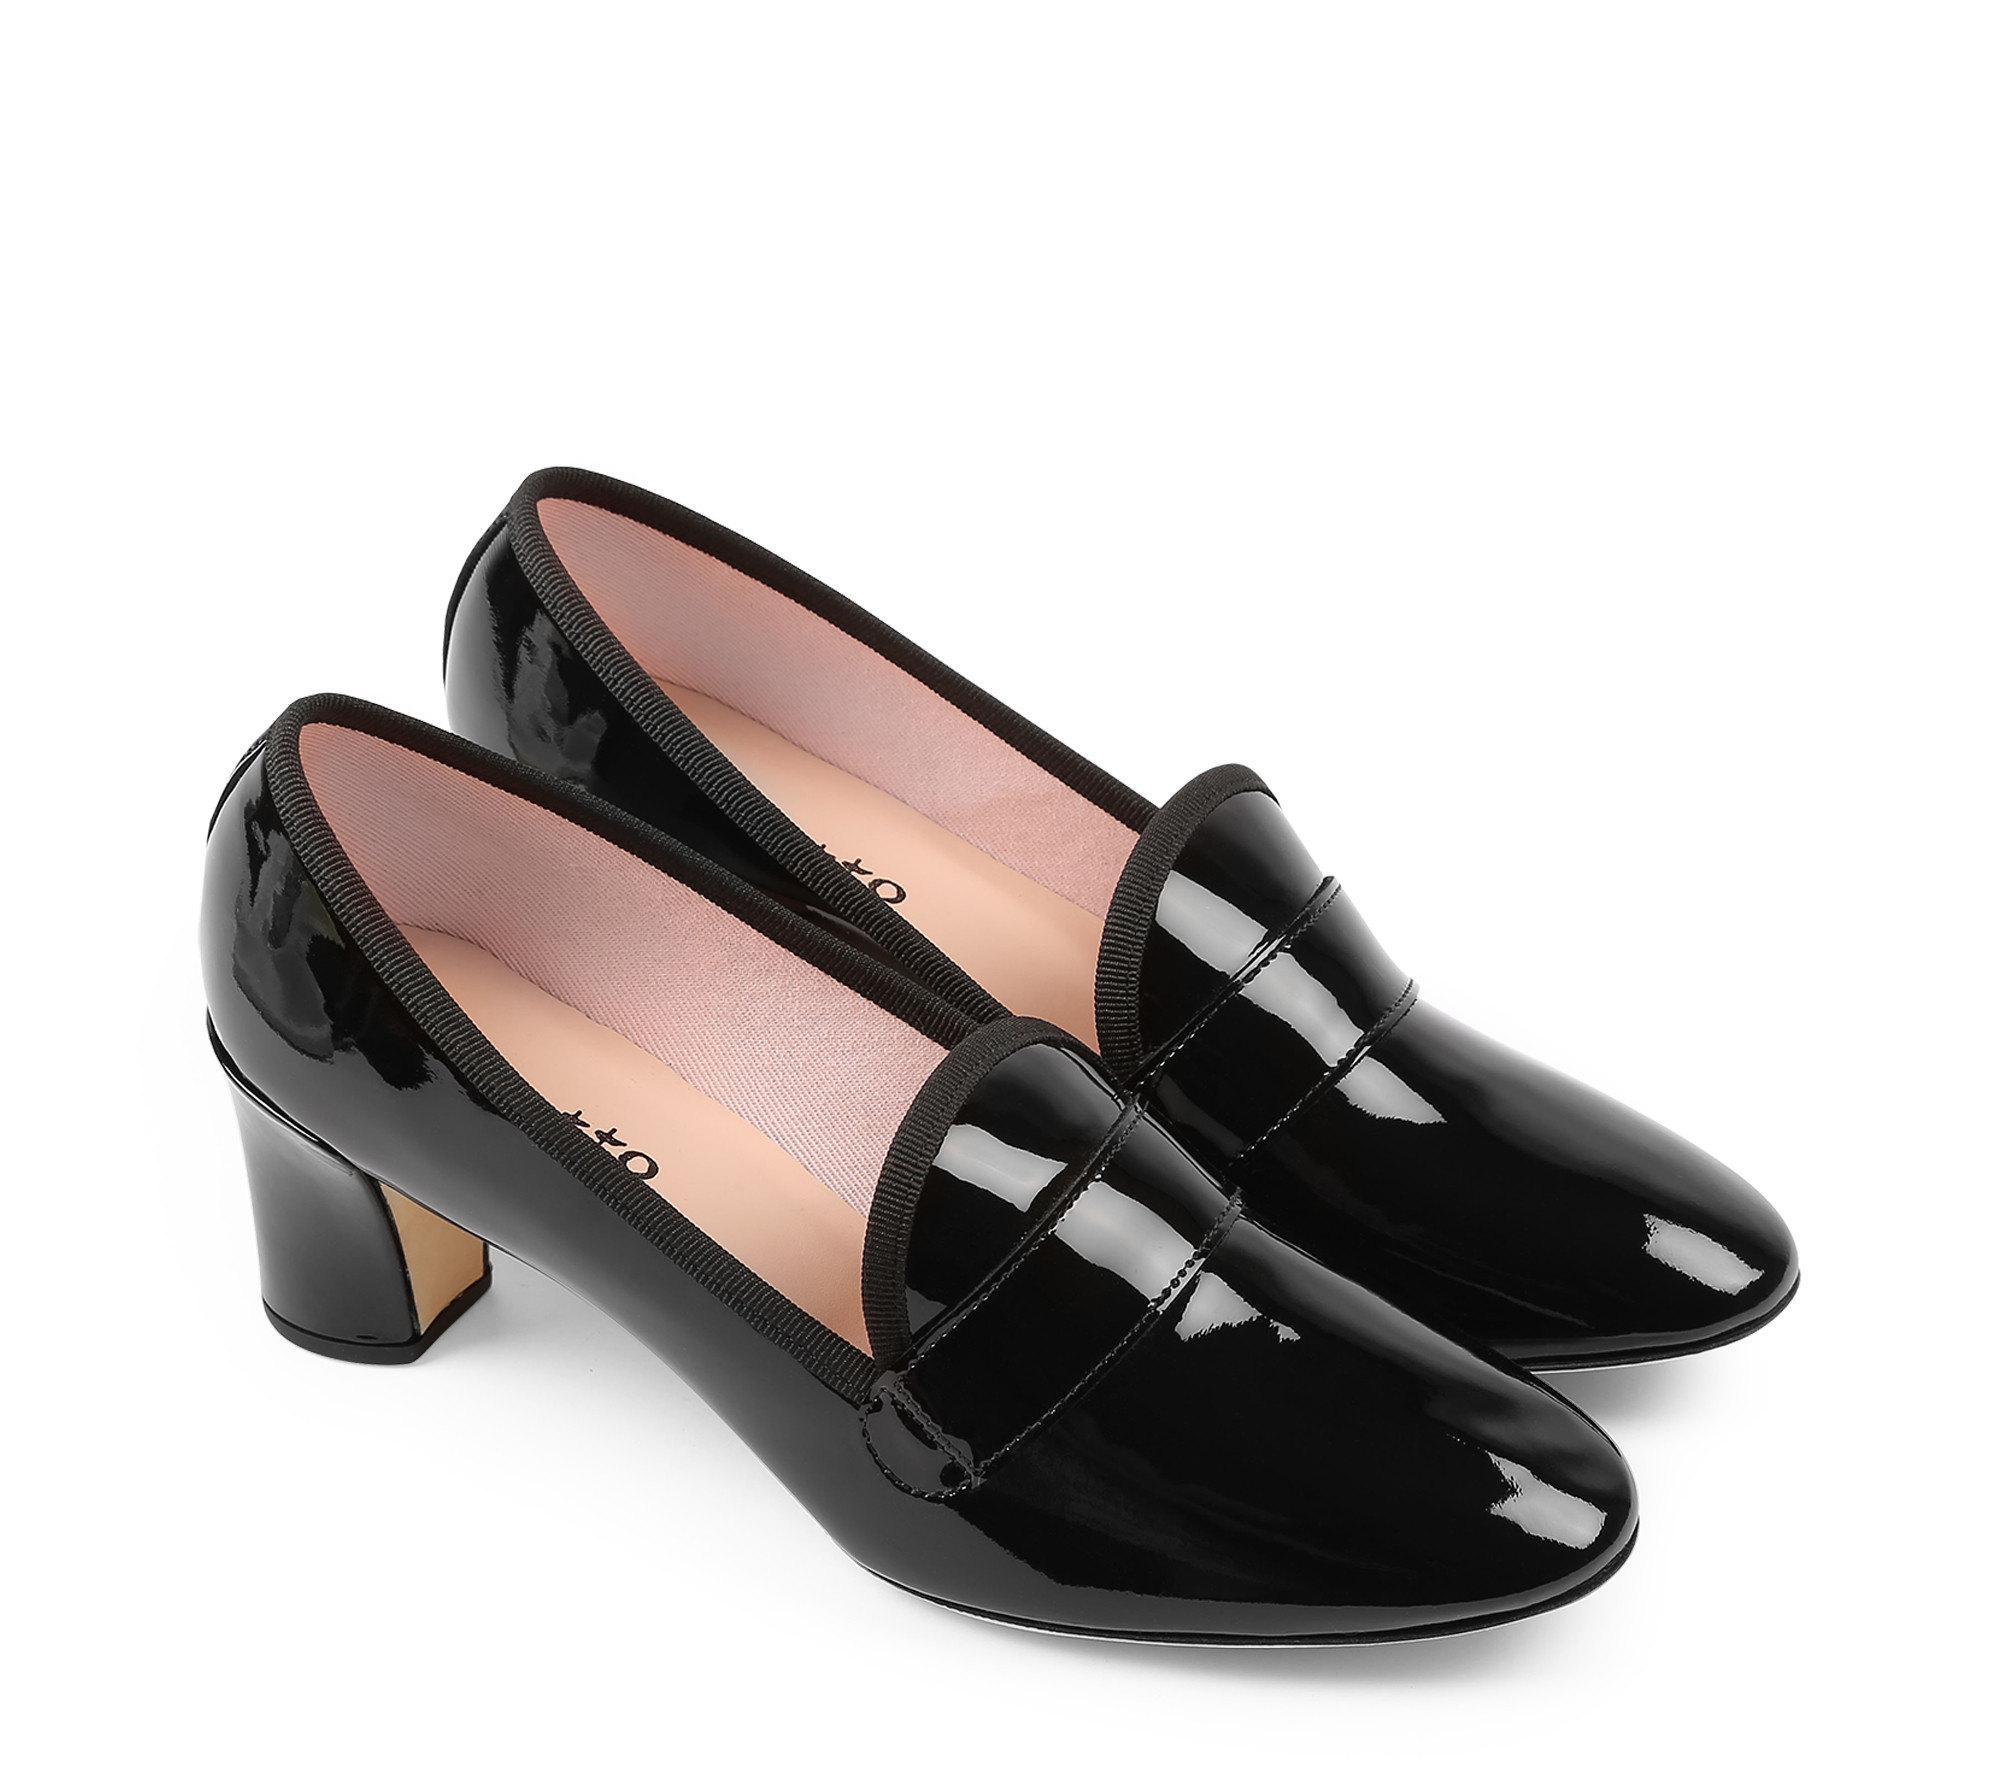 Elvis loafers